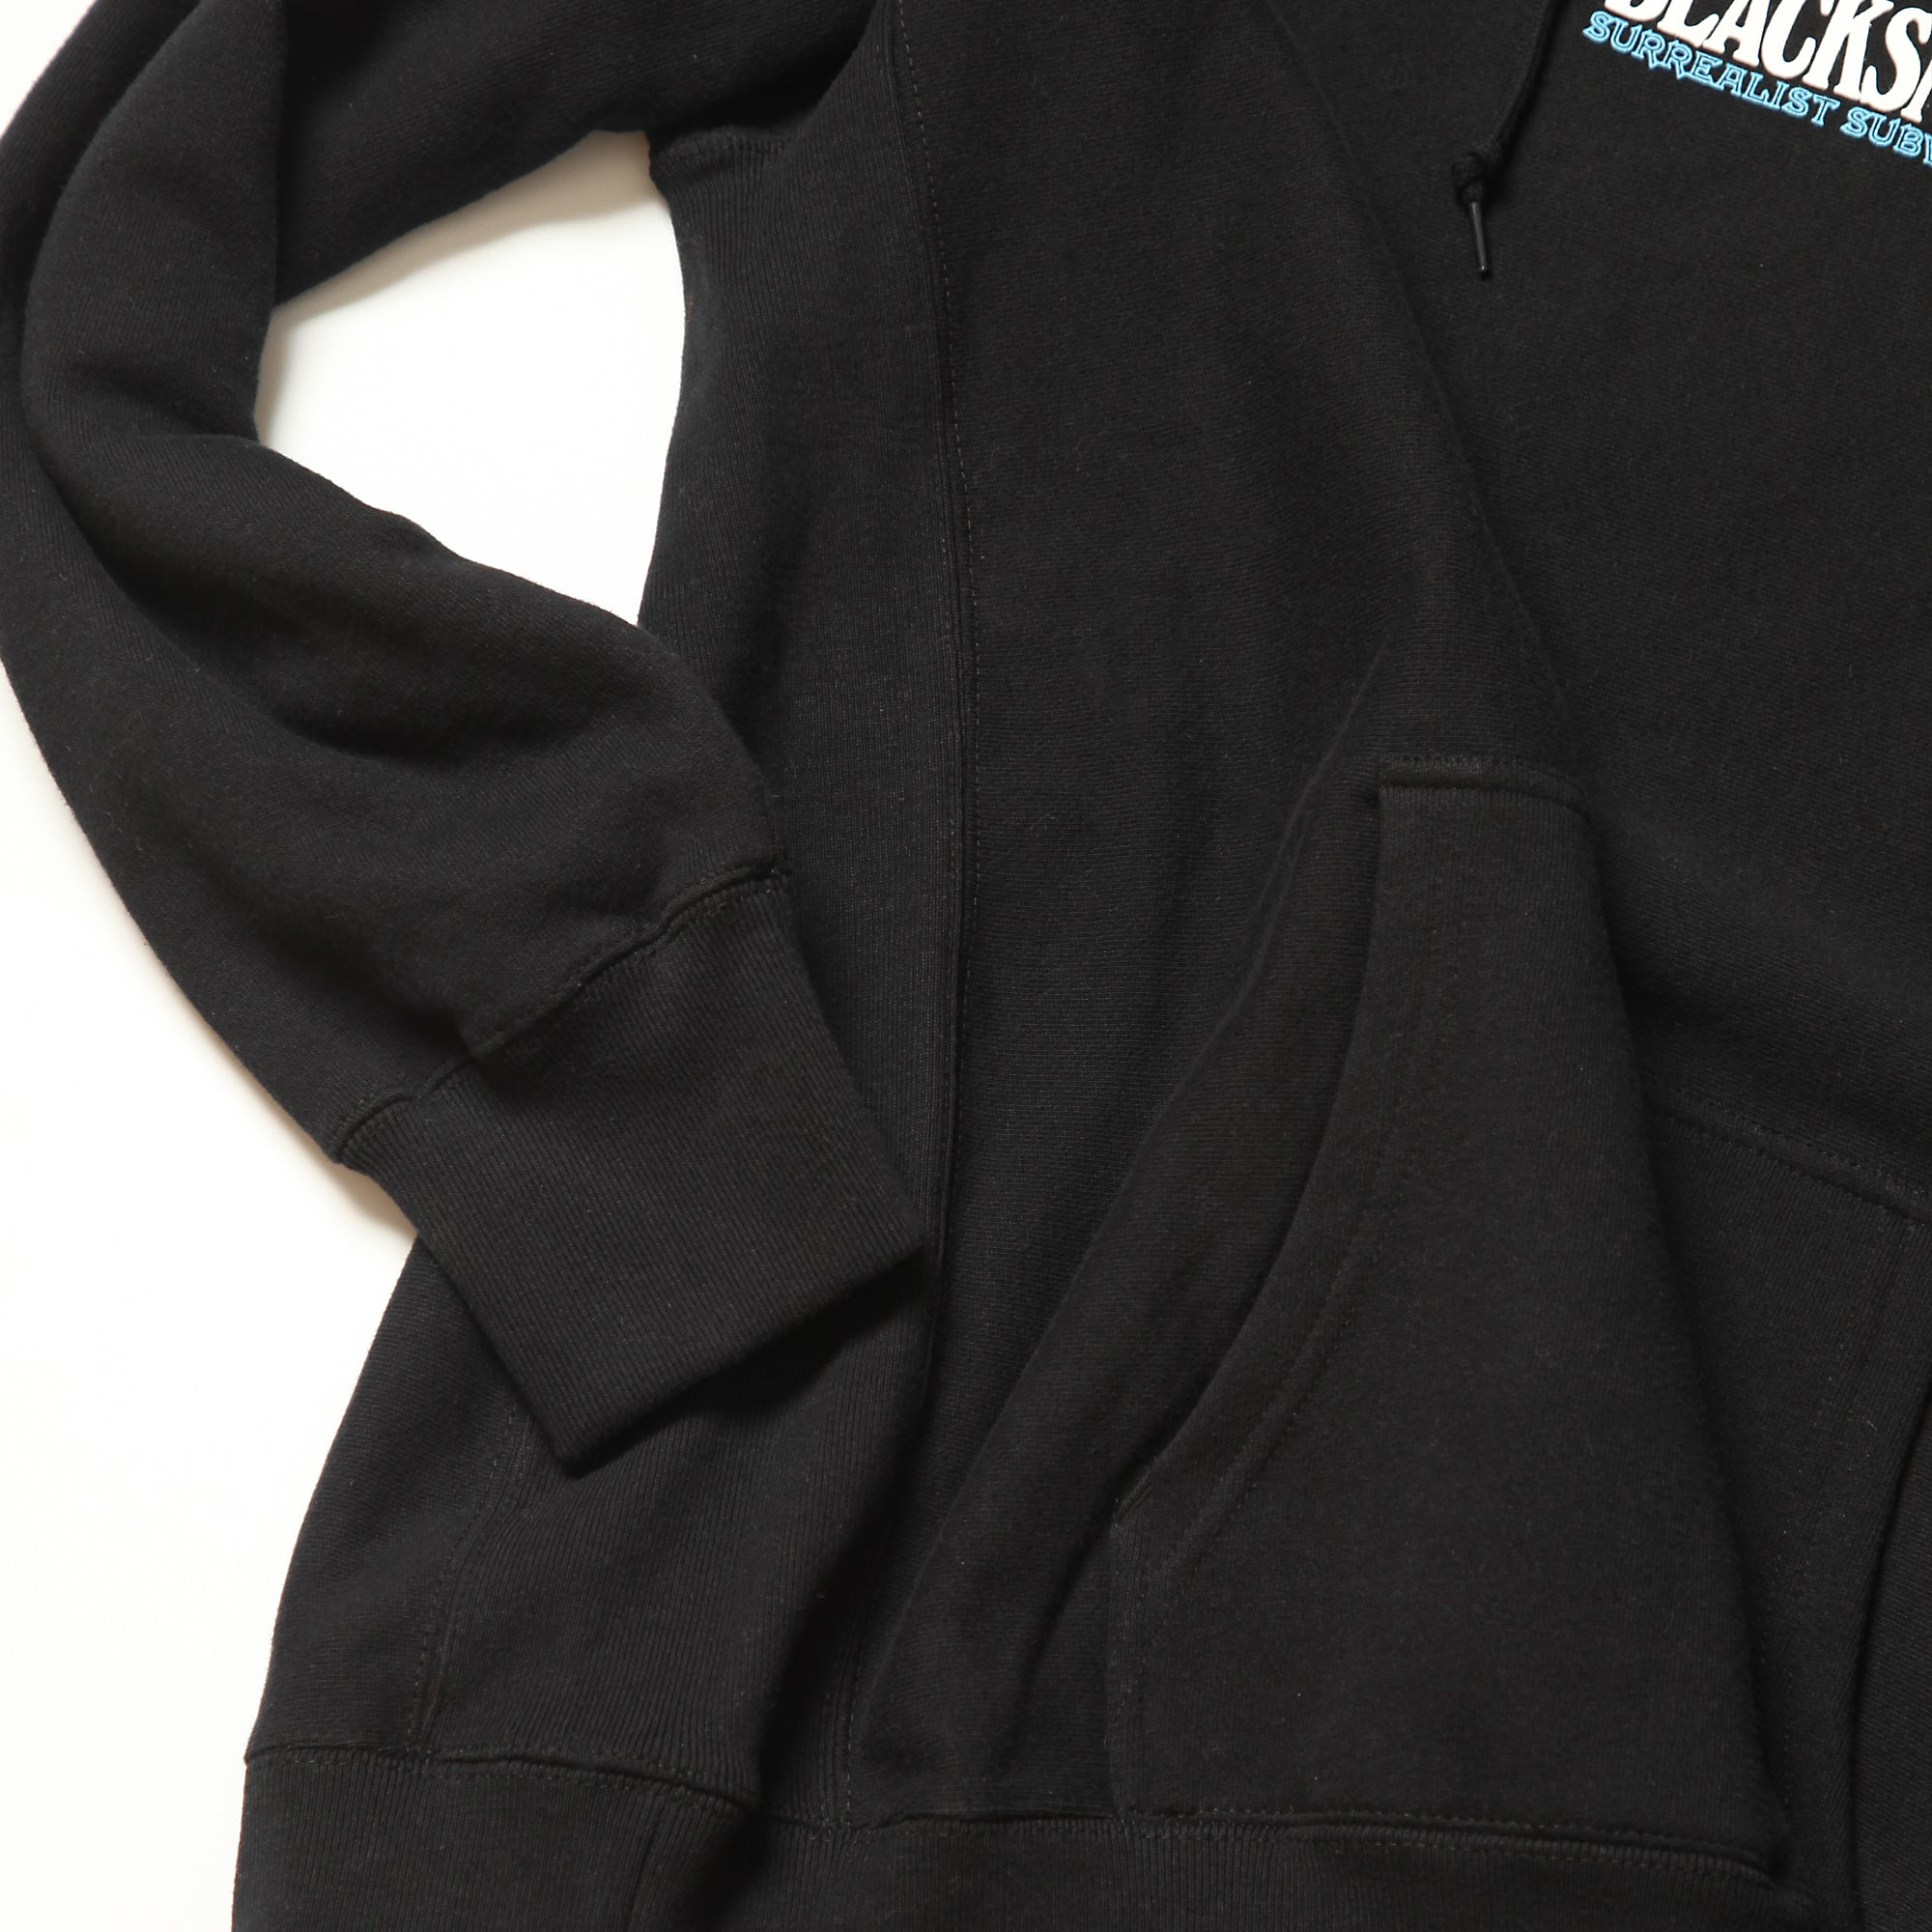 Blacksmith - Surrealist Subversion Hoodie - Black